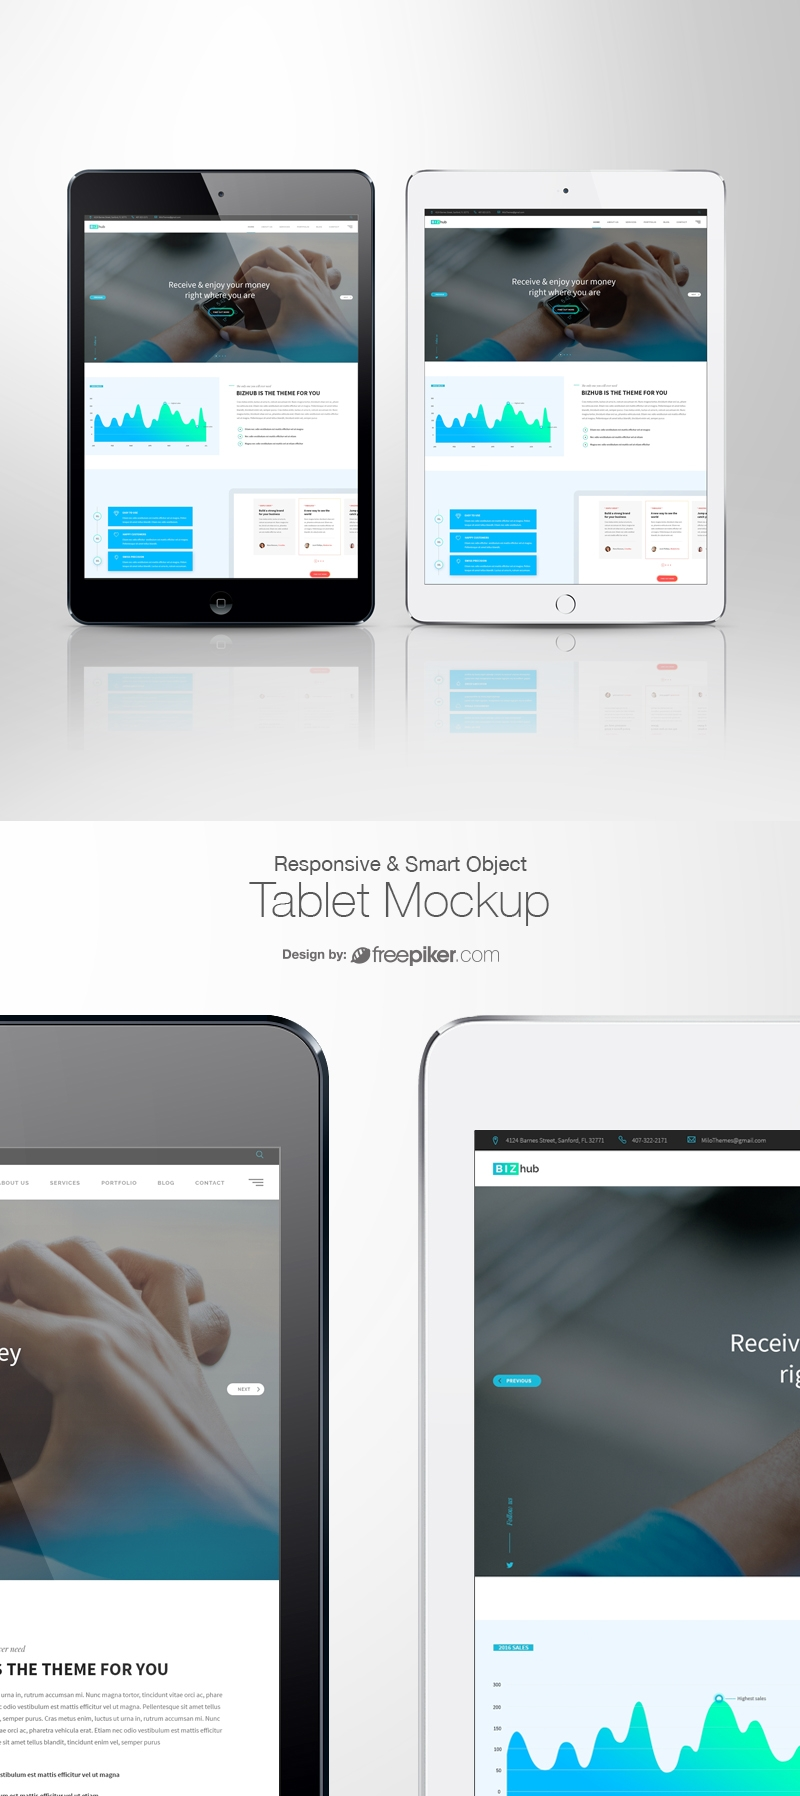 Responsive Screen Mockup Whote & Bacl Tablet